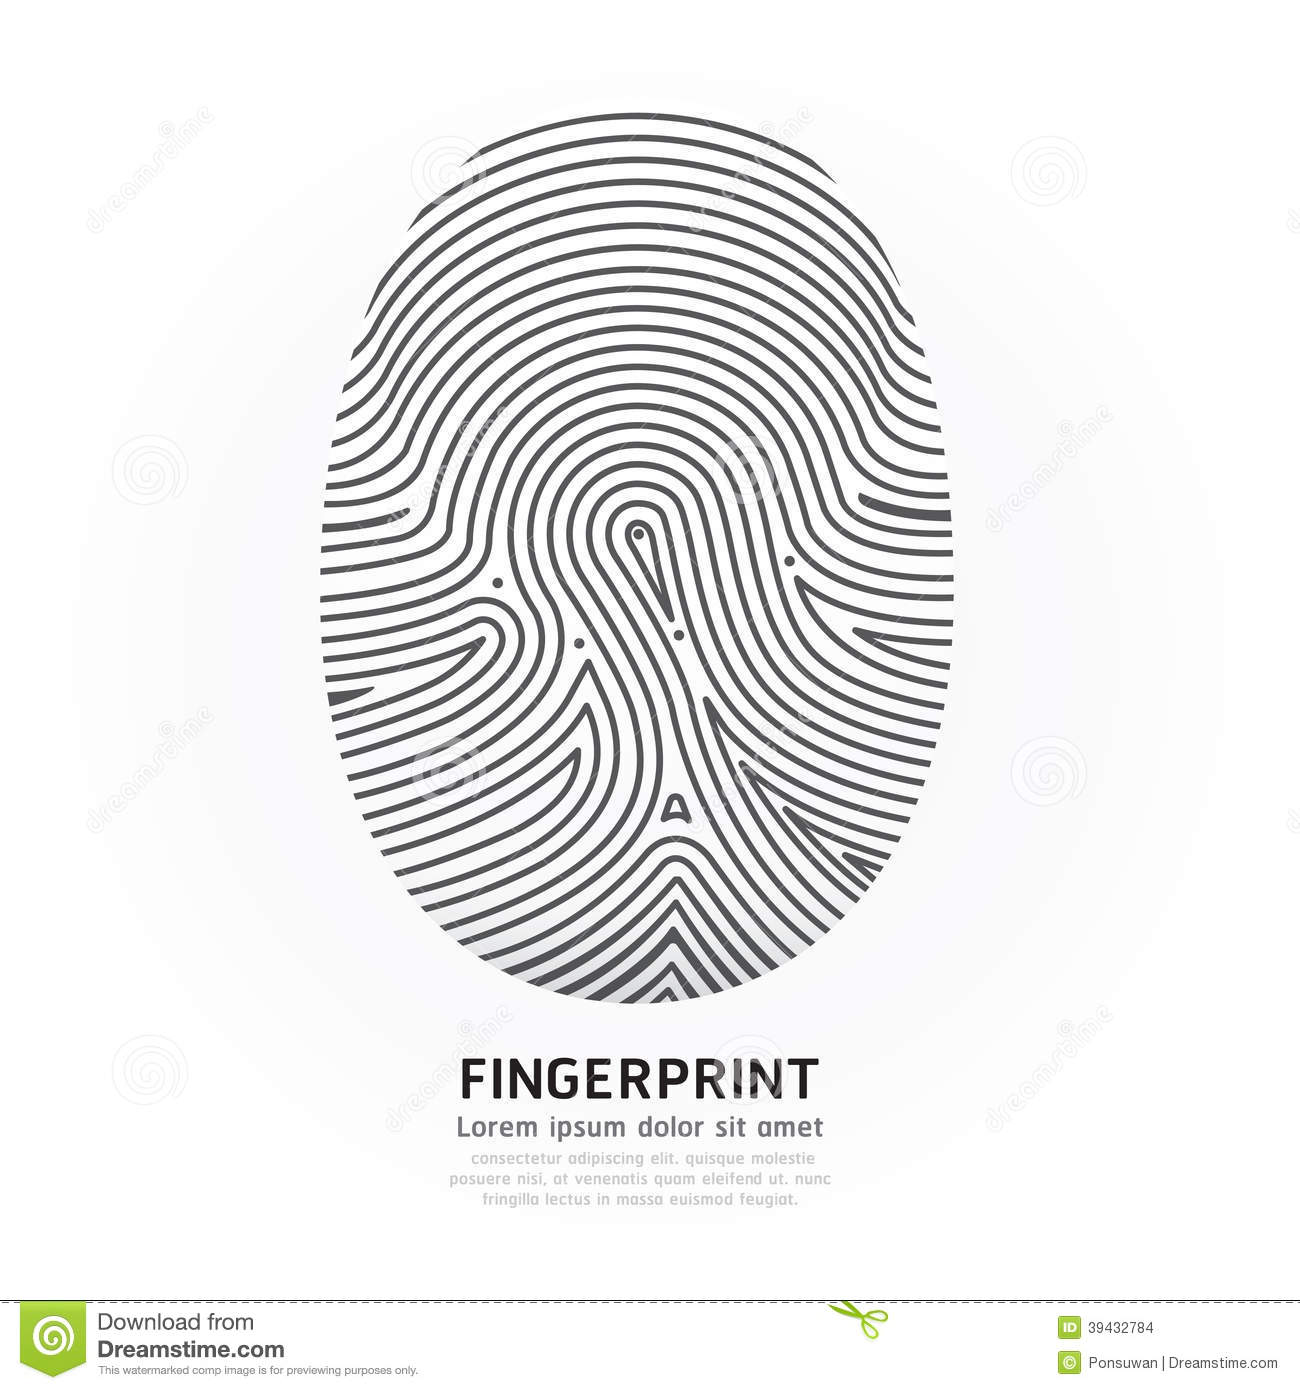 Fingerprint Color Vector Design Illustration Stock Vector